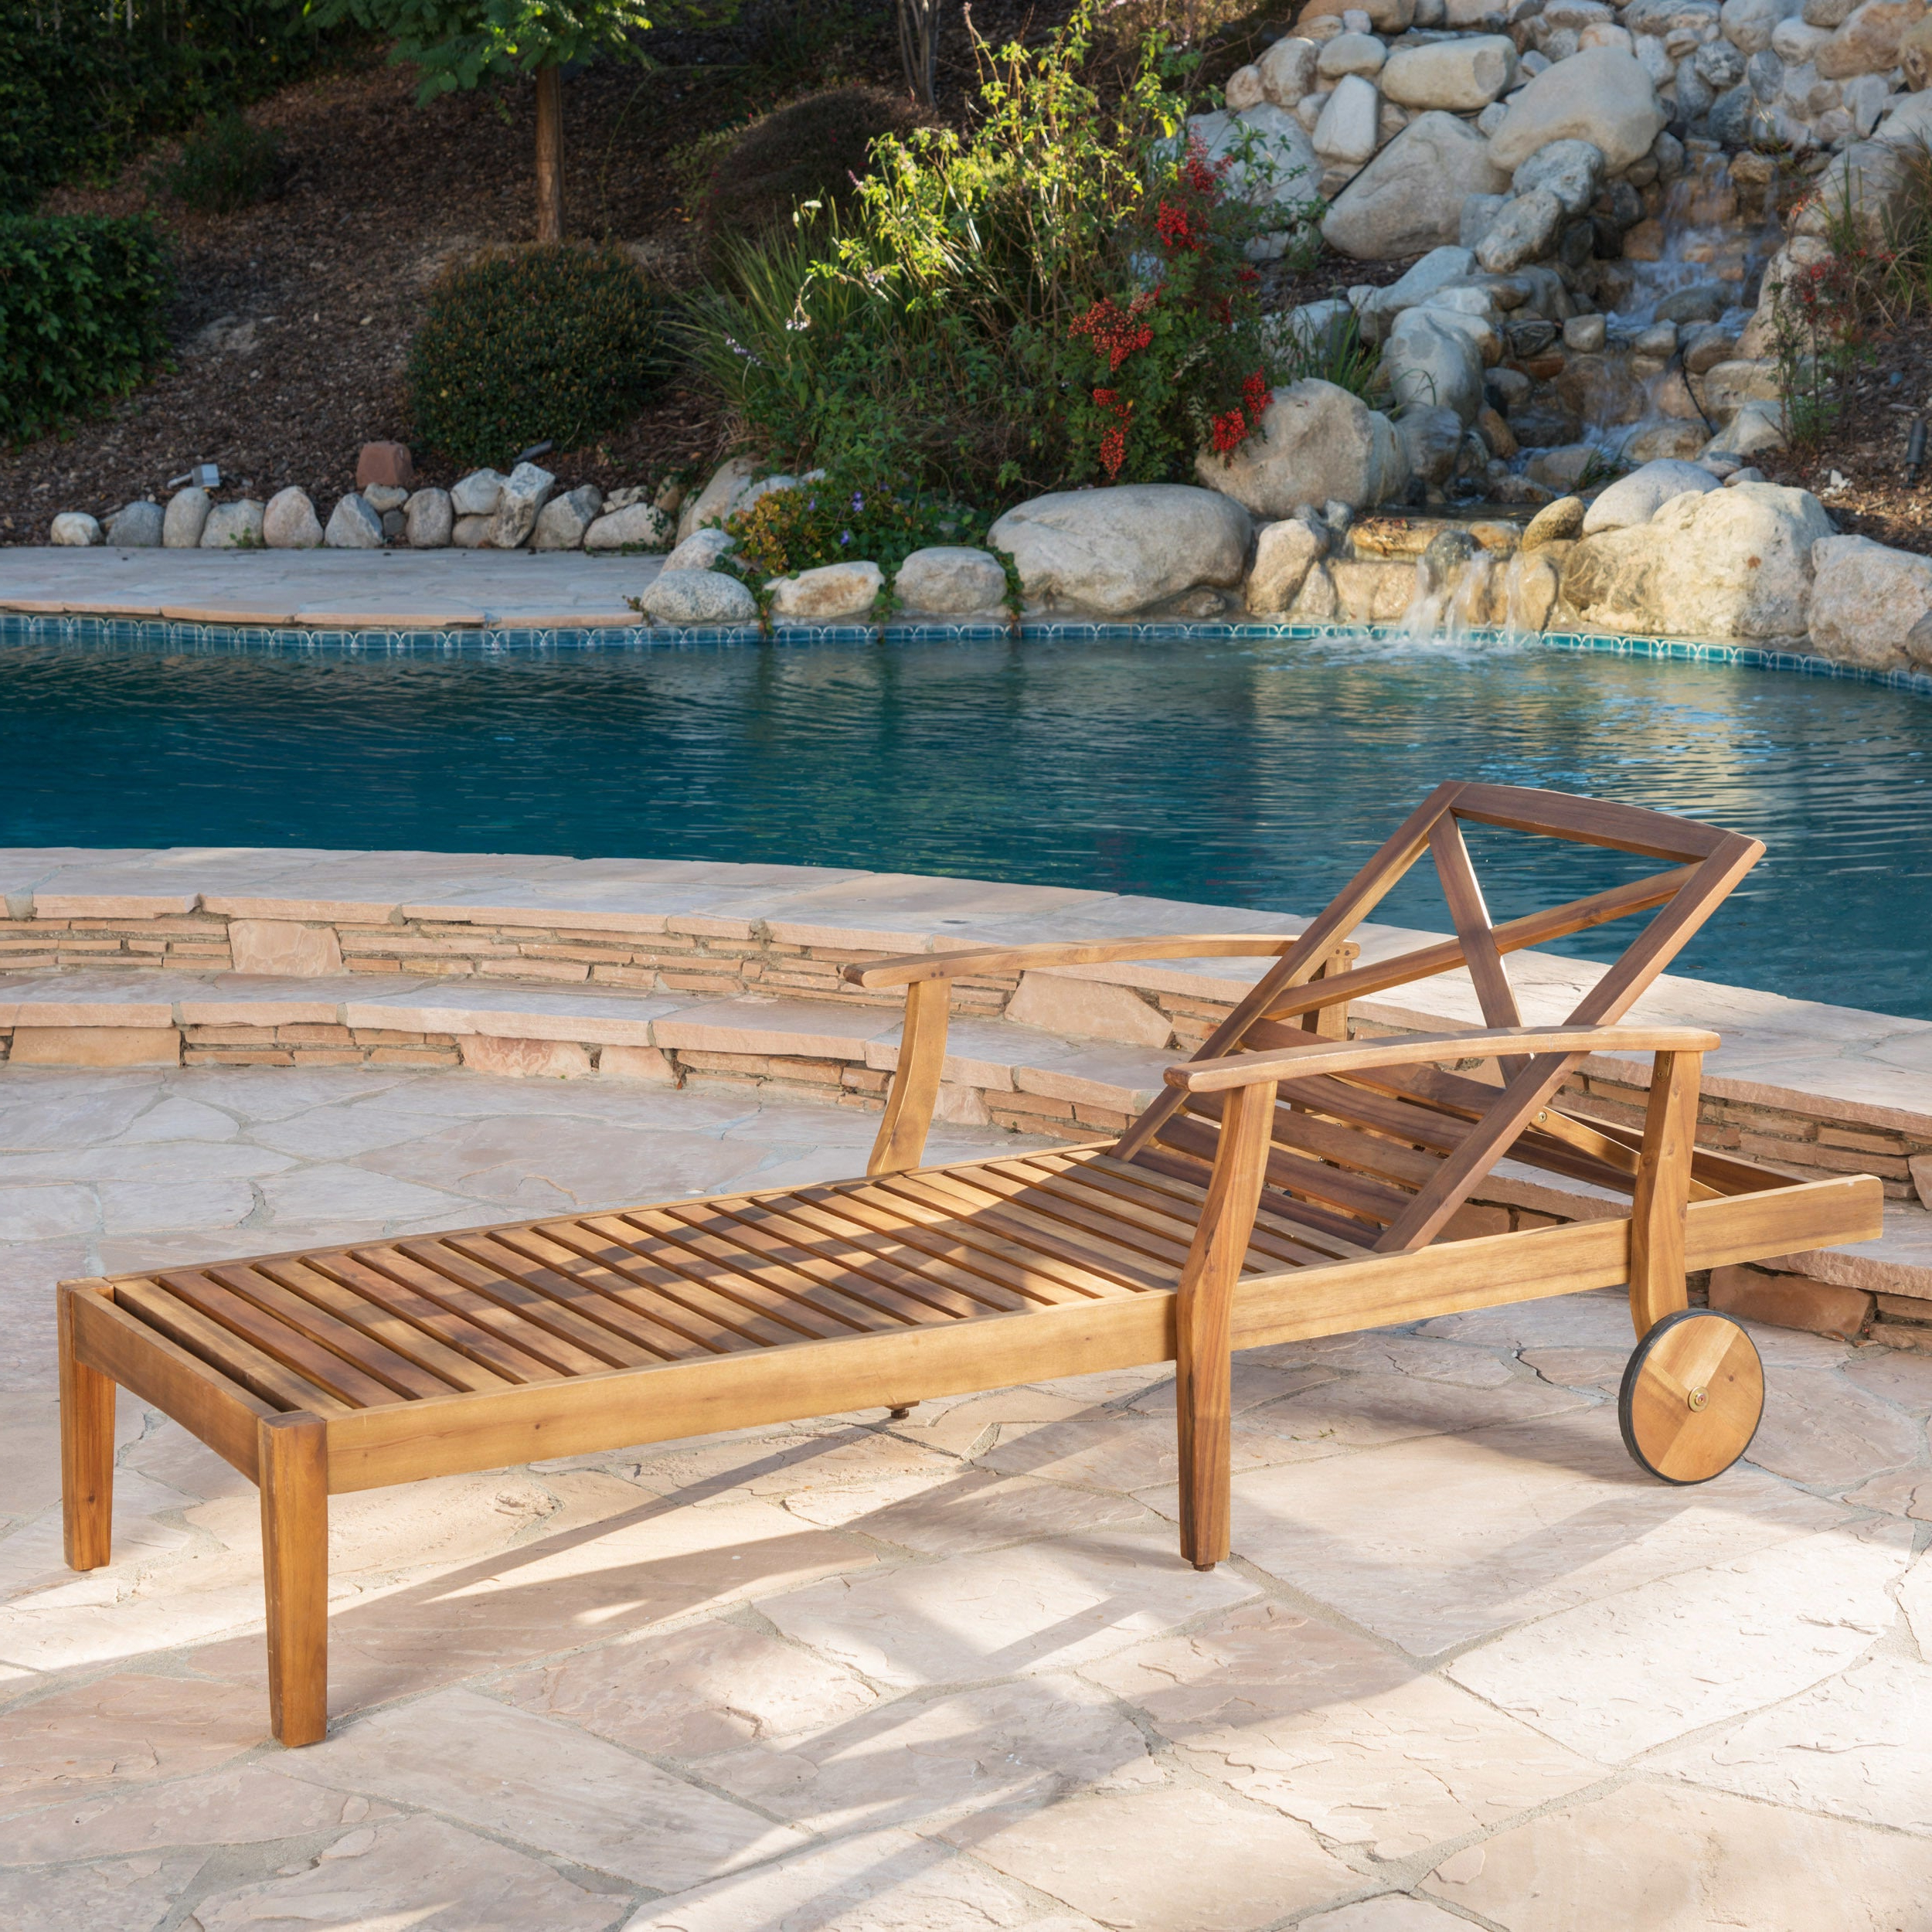 Perla Outdoor Acacia Wood Chaise Lounges Pertaining To Well Known Perla Outdoor Acacia Wood Chaise Lounge With Cushionchristopher Knight  Home (Gallery 11 of 25)